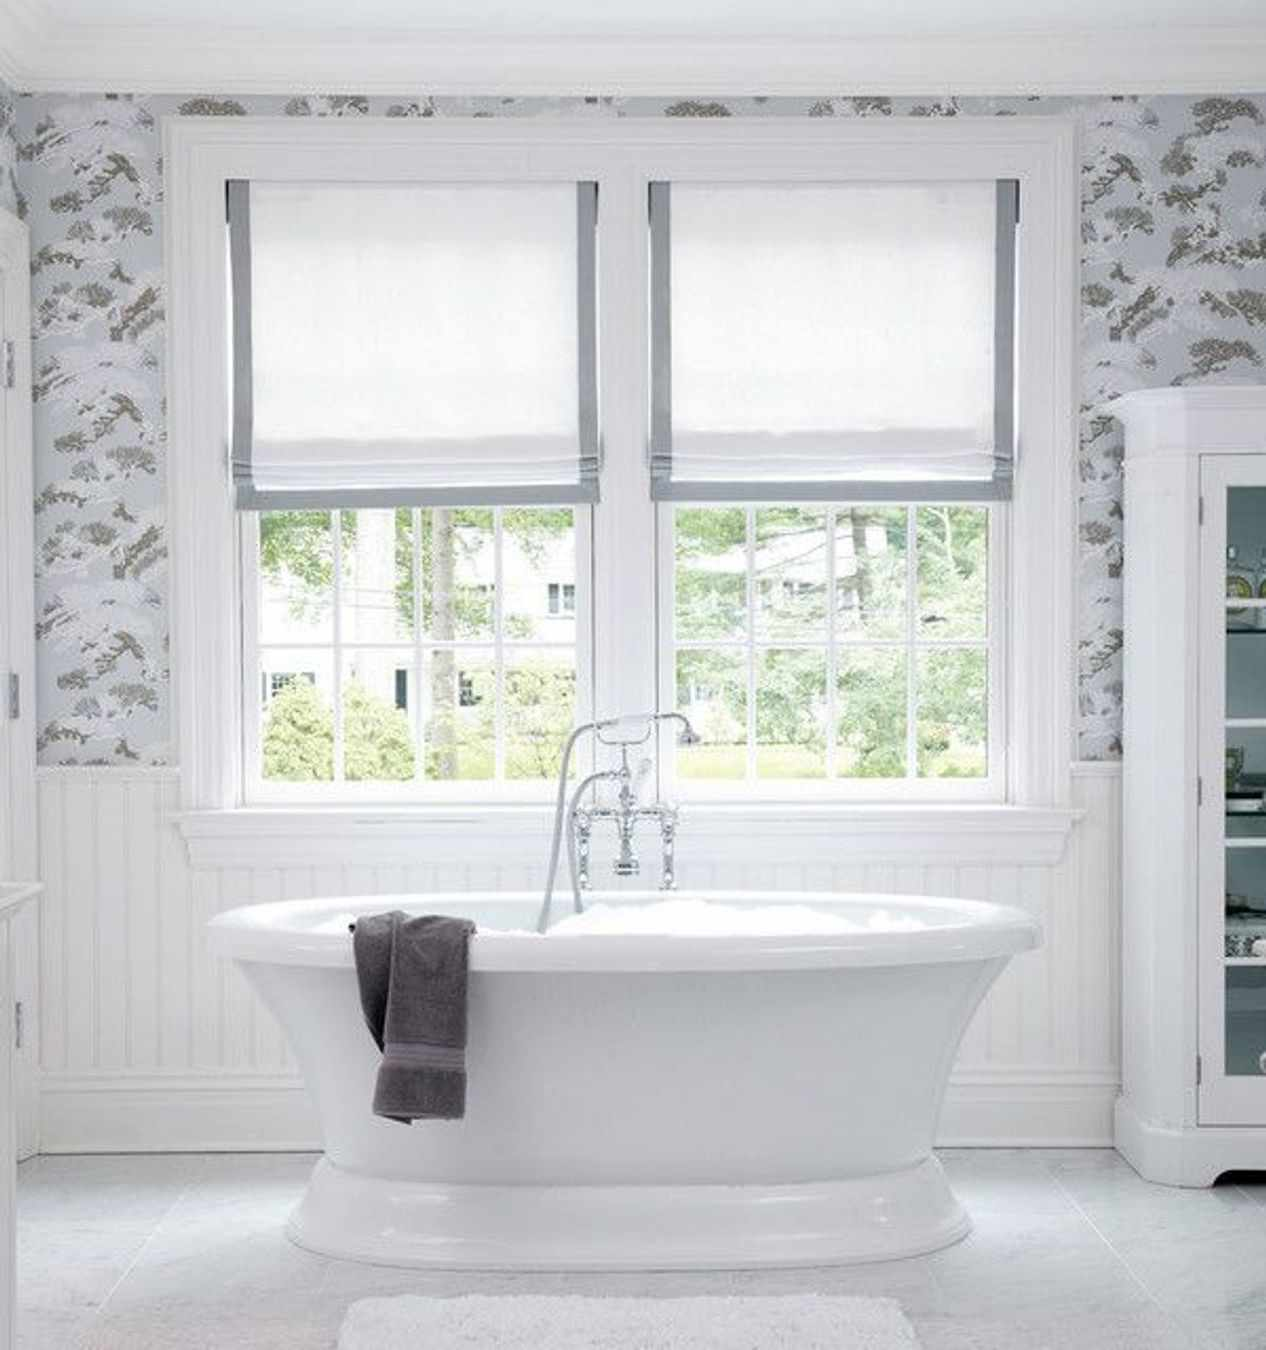 9 bathroom window treatment ideas deco window fashions for Bathroom window curtains